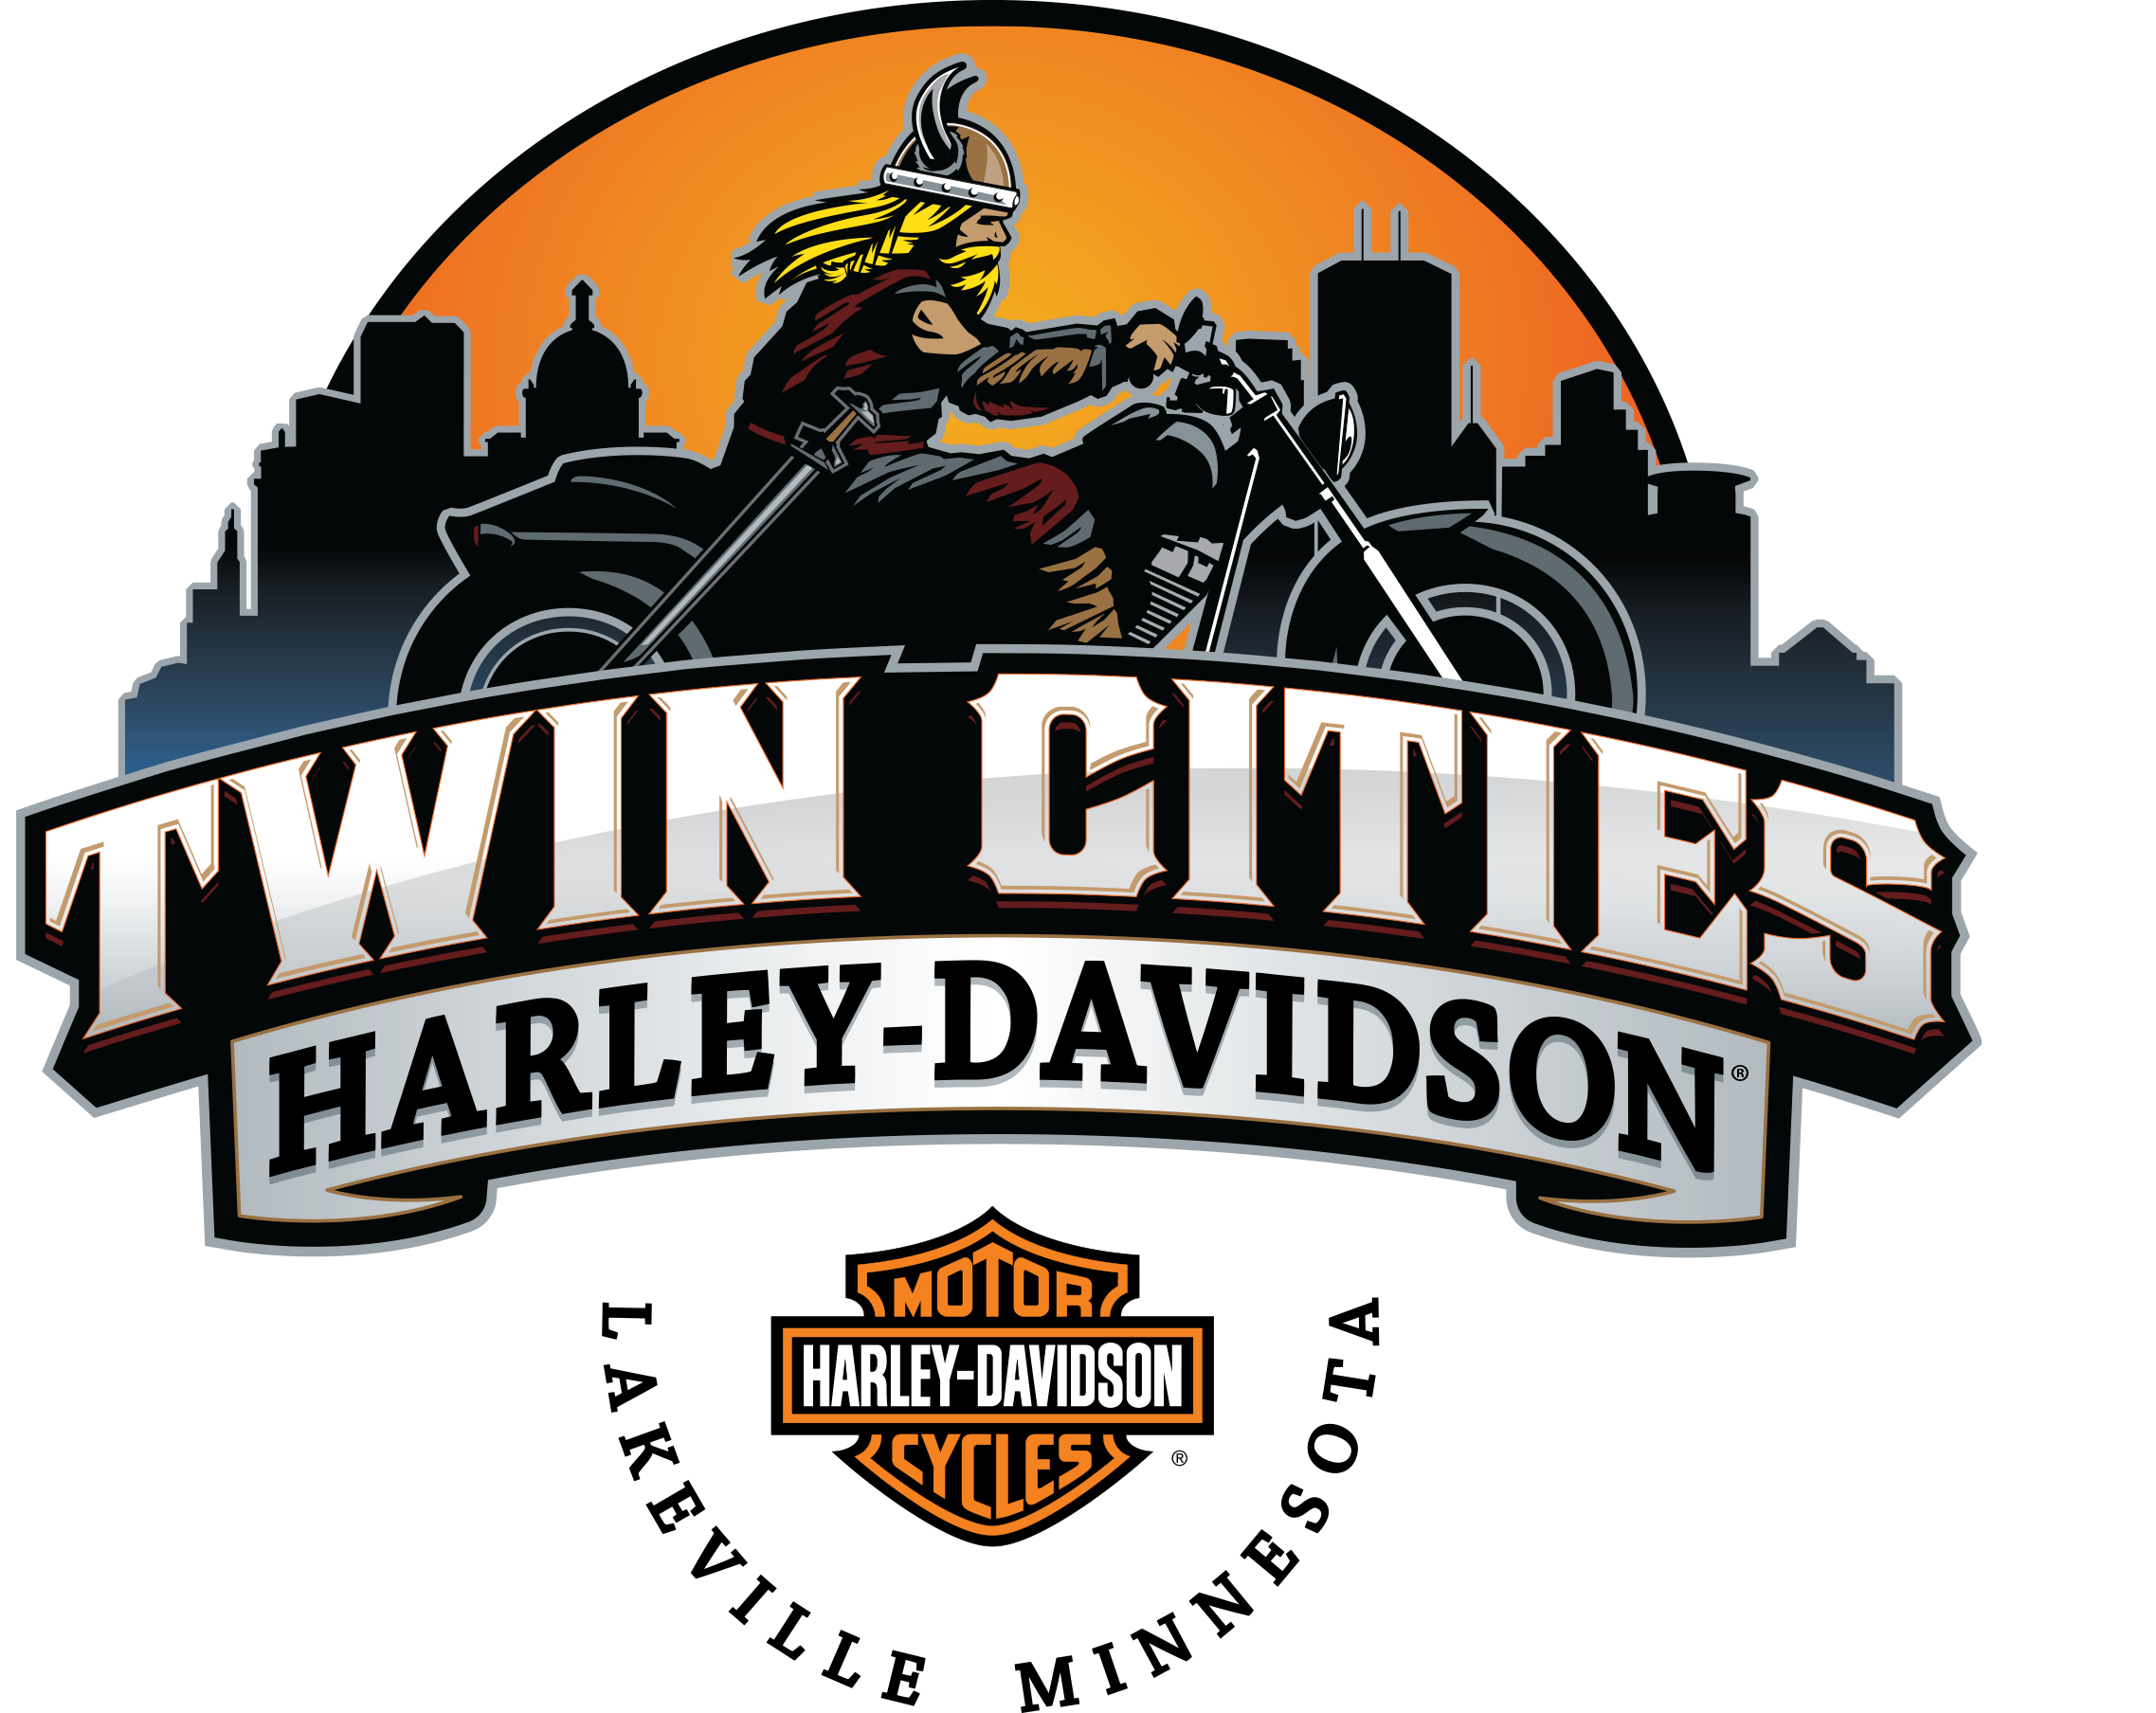 Twin Cities Harley-Davidson® logo